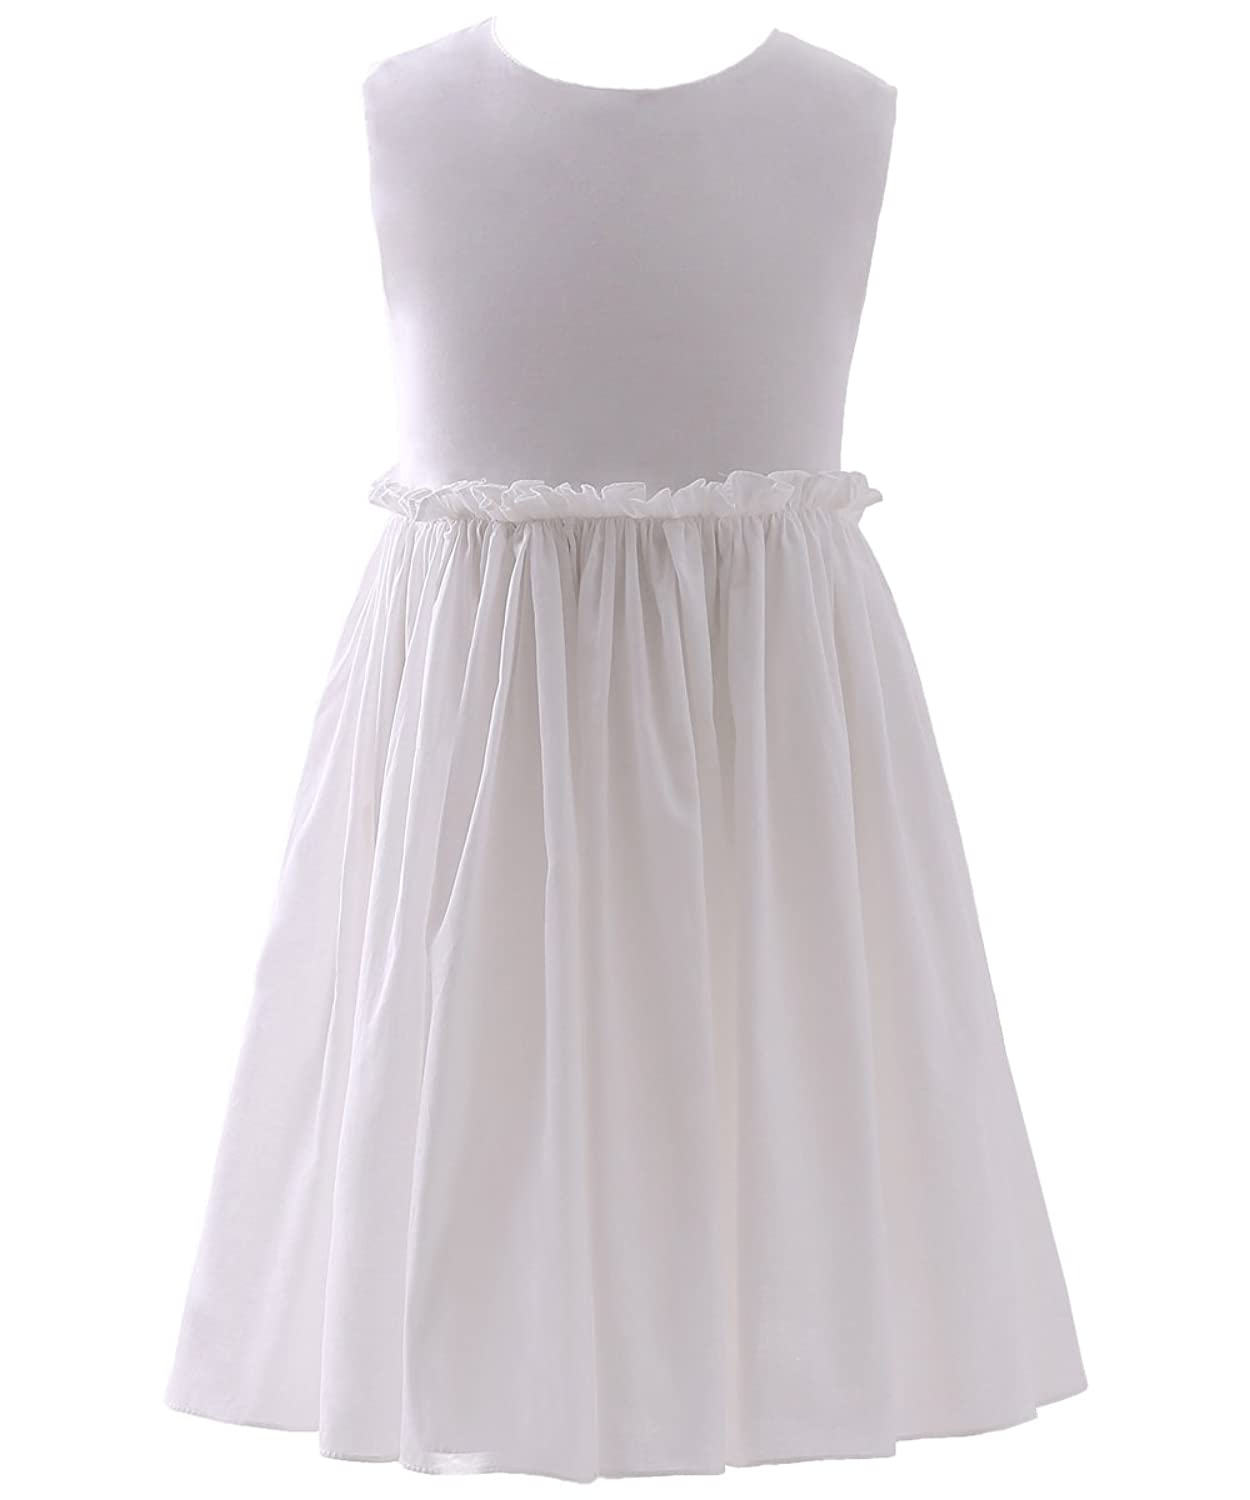 ffa52ab34d0a AbaoSisters Girls Summer Dress Sleeveless Hollow Back Frock 2-9 Year Old